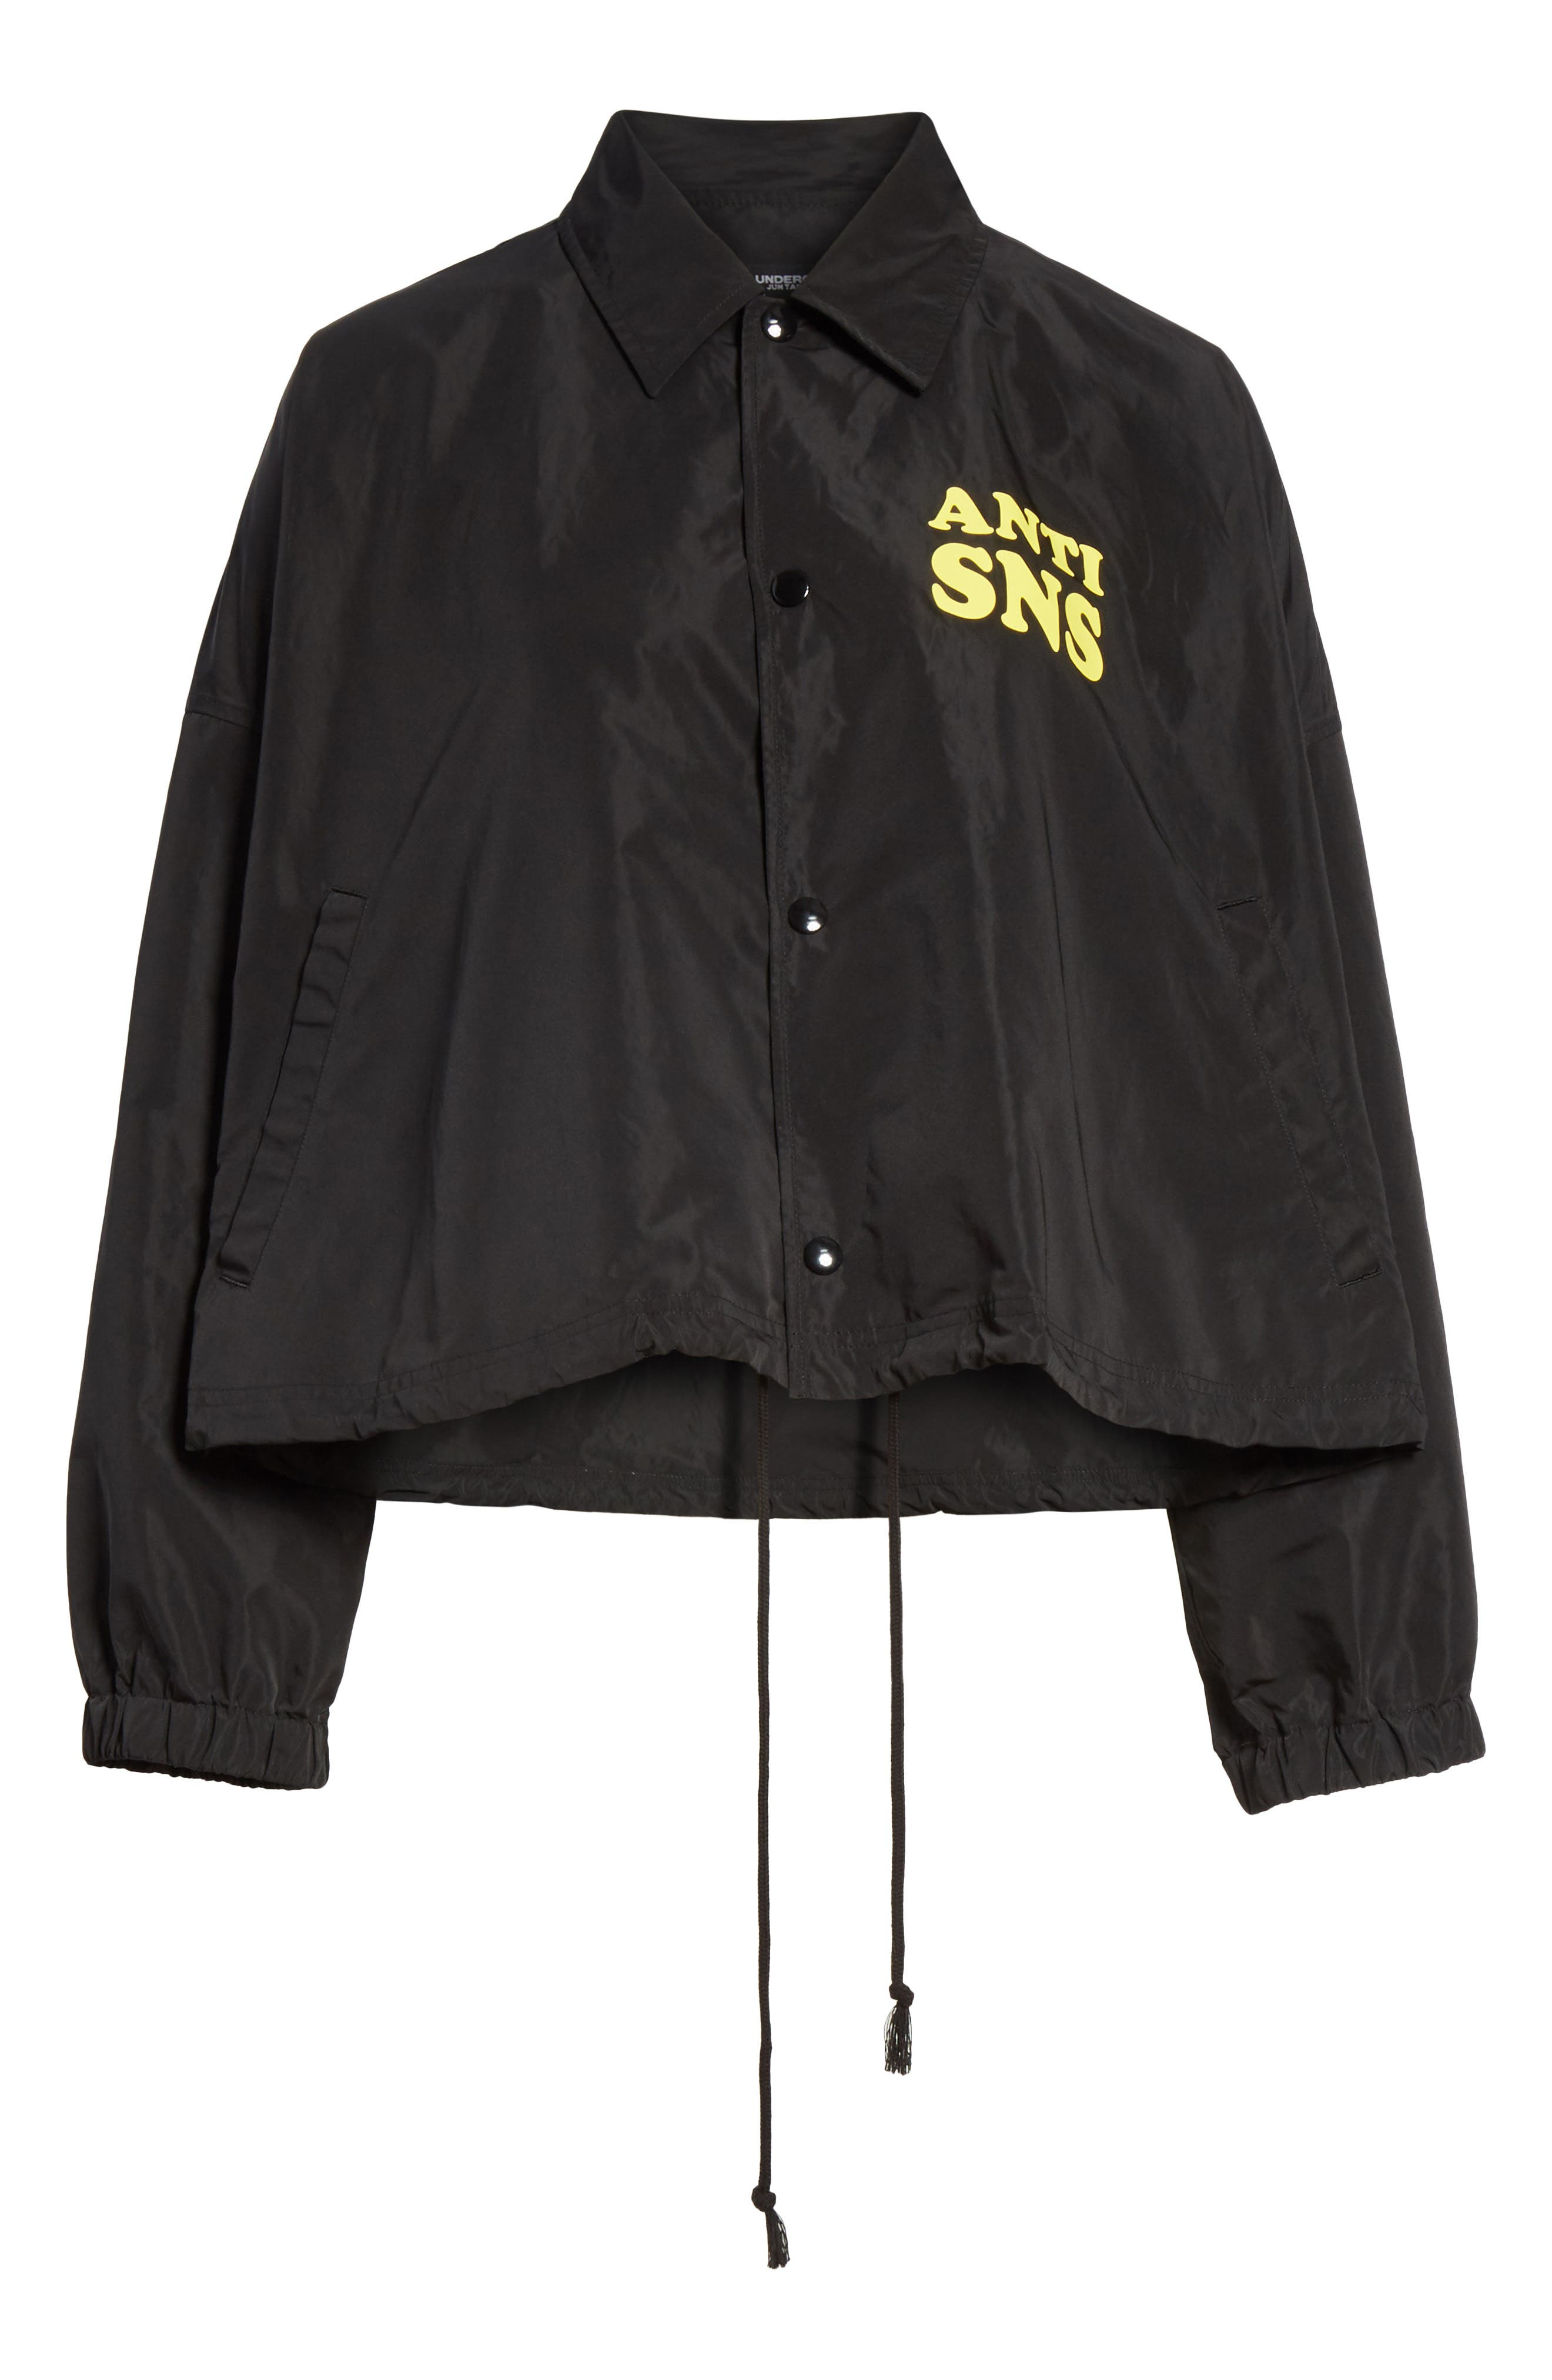 Anti SNS Jacket,                             Alternate thumbnail 5, color,                             001